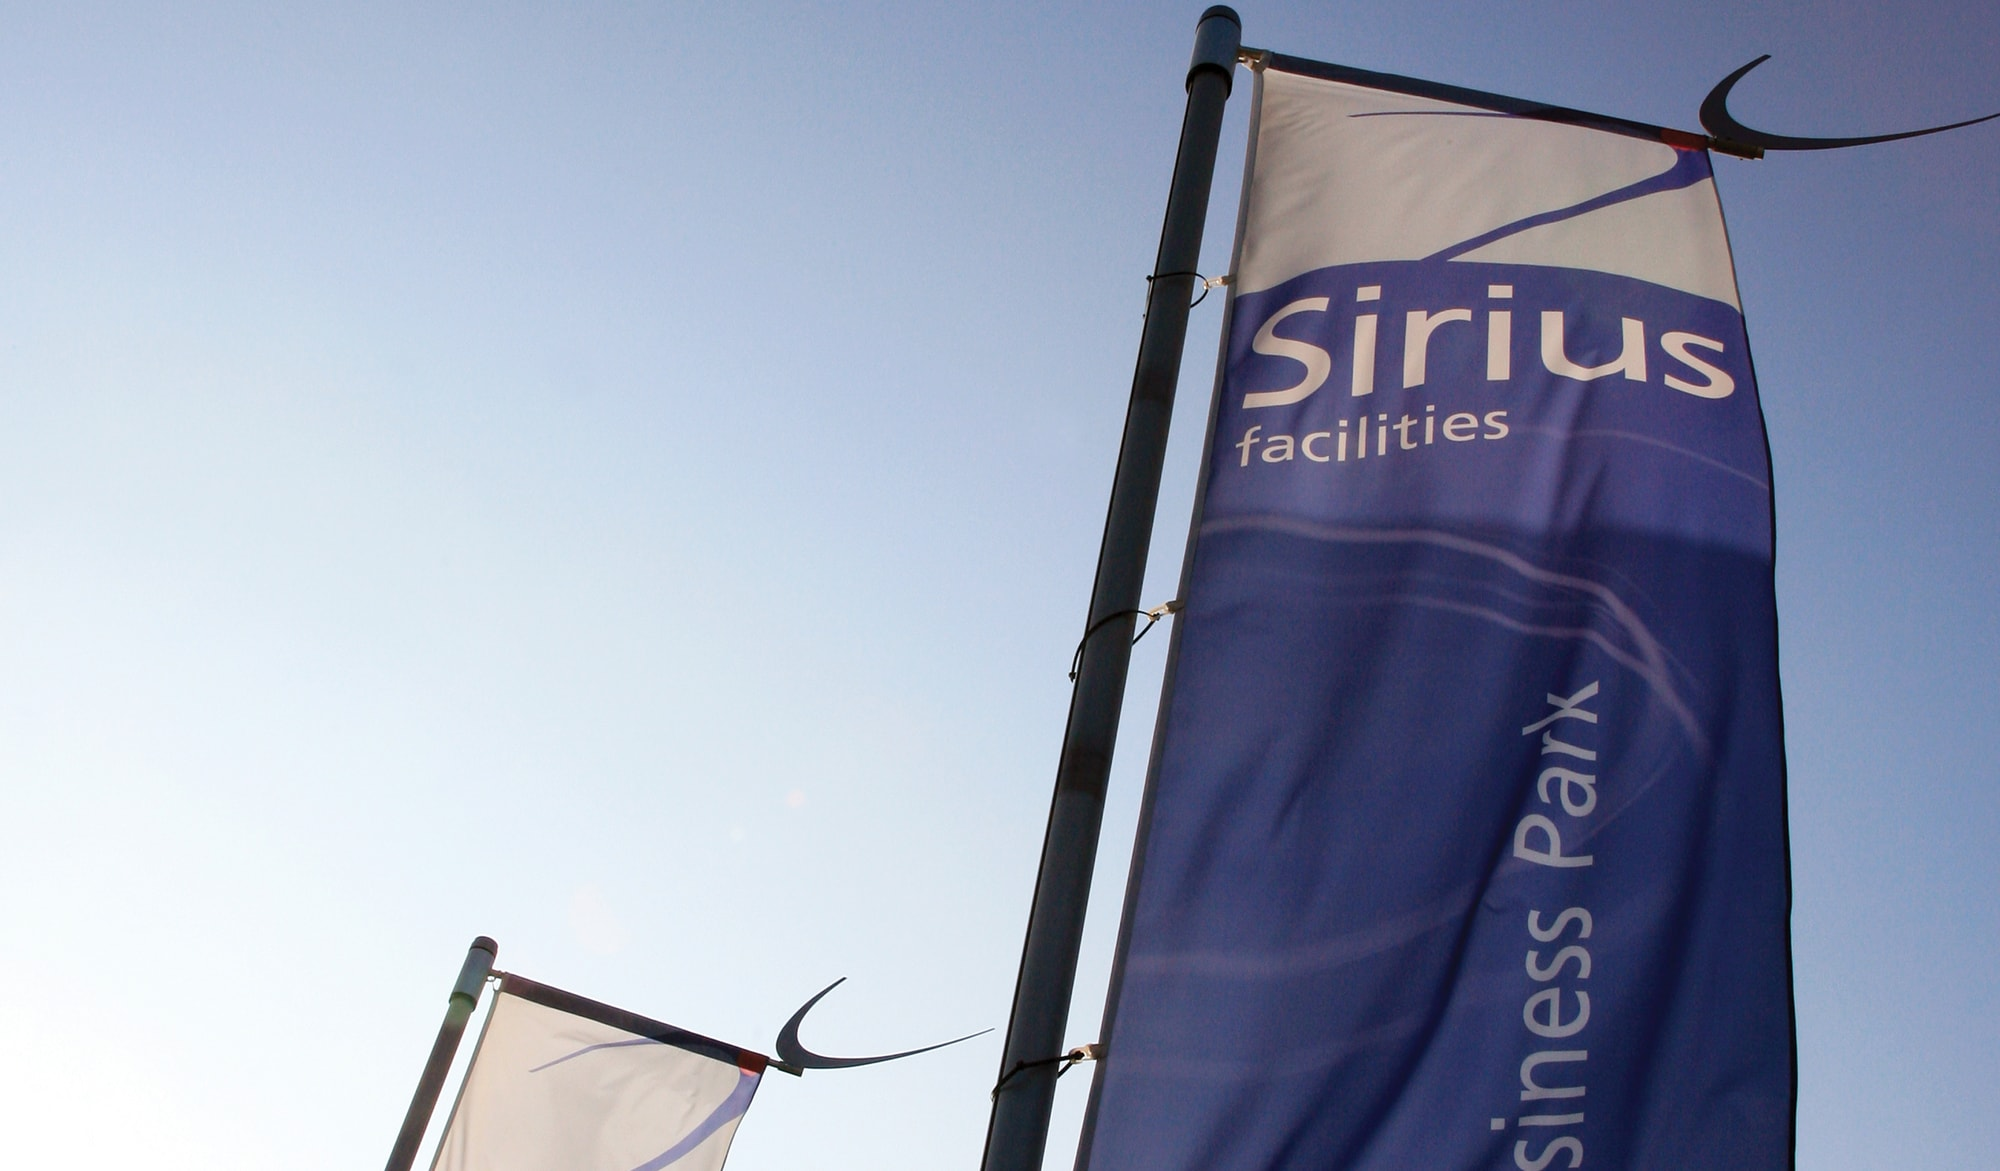 Sirius Facilities flags